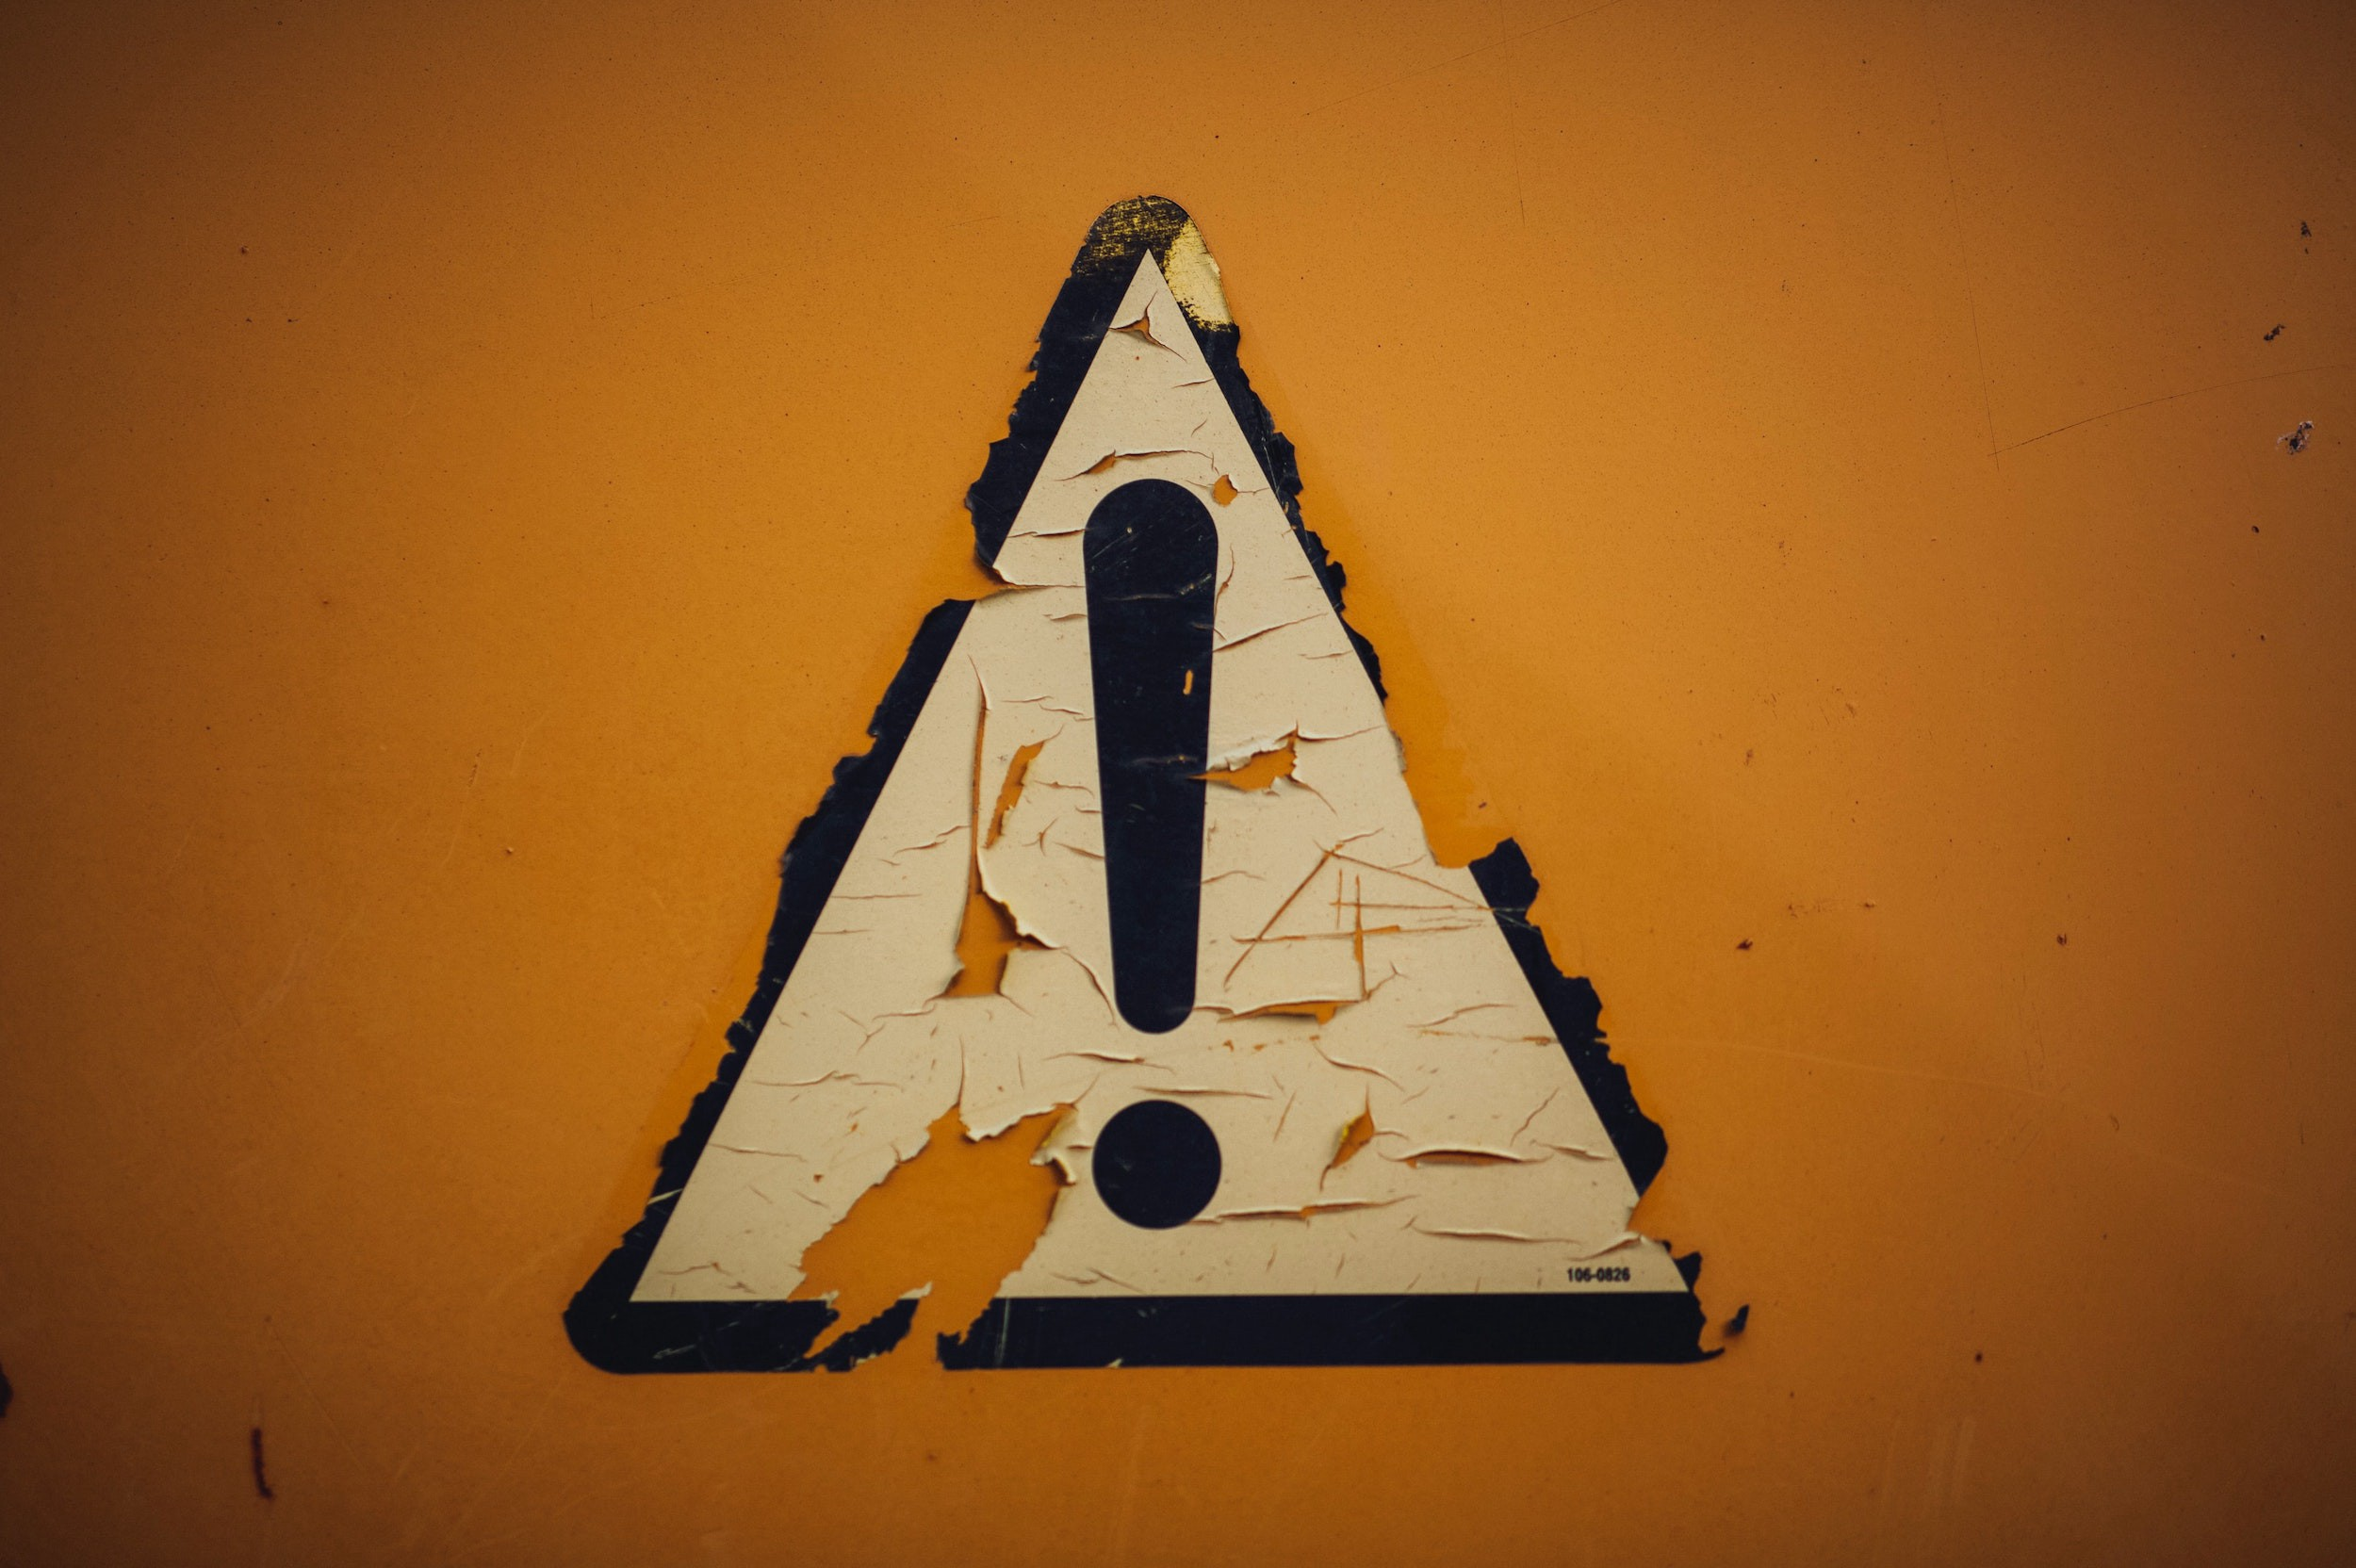 Yellow caution sign, rather beat up on a wall